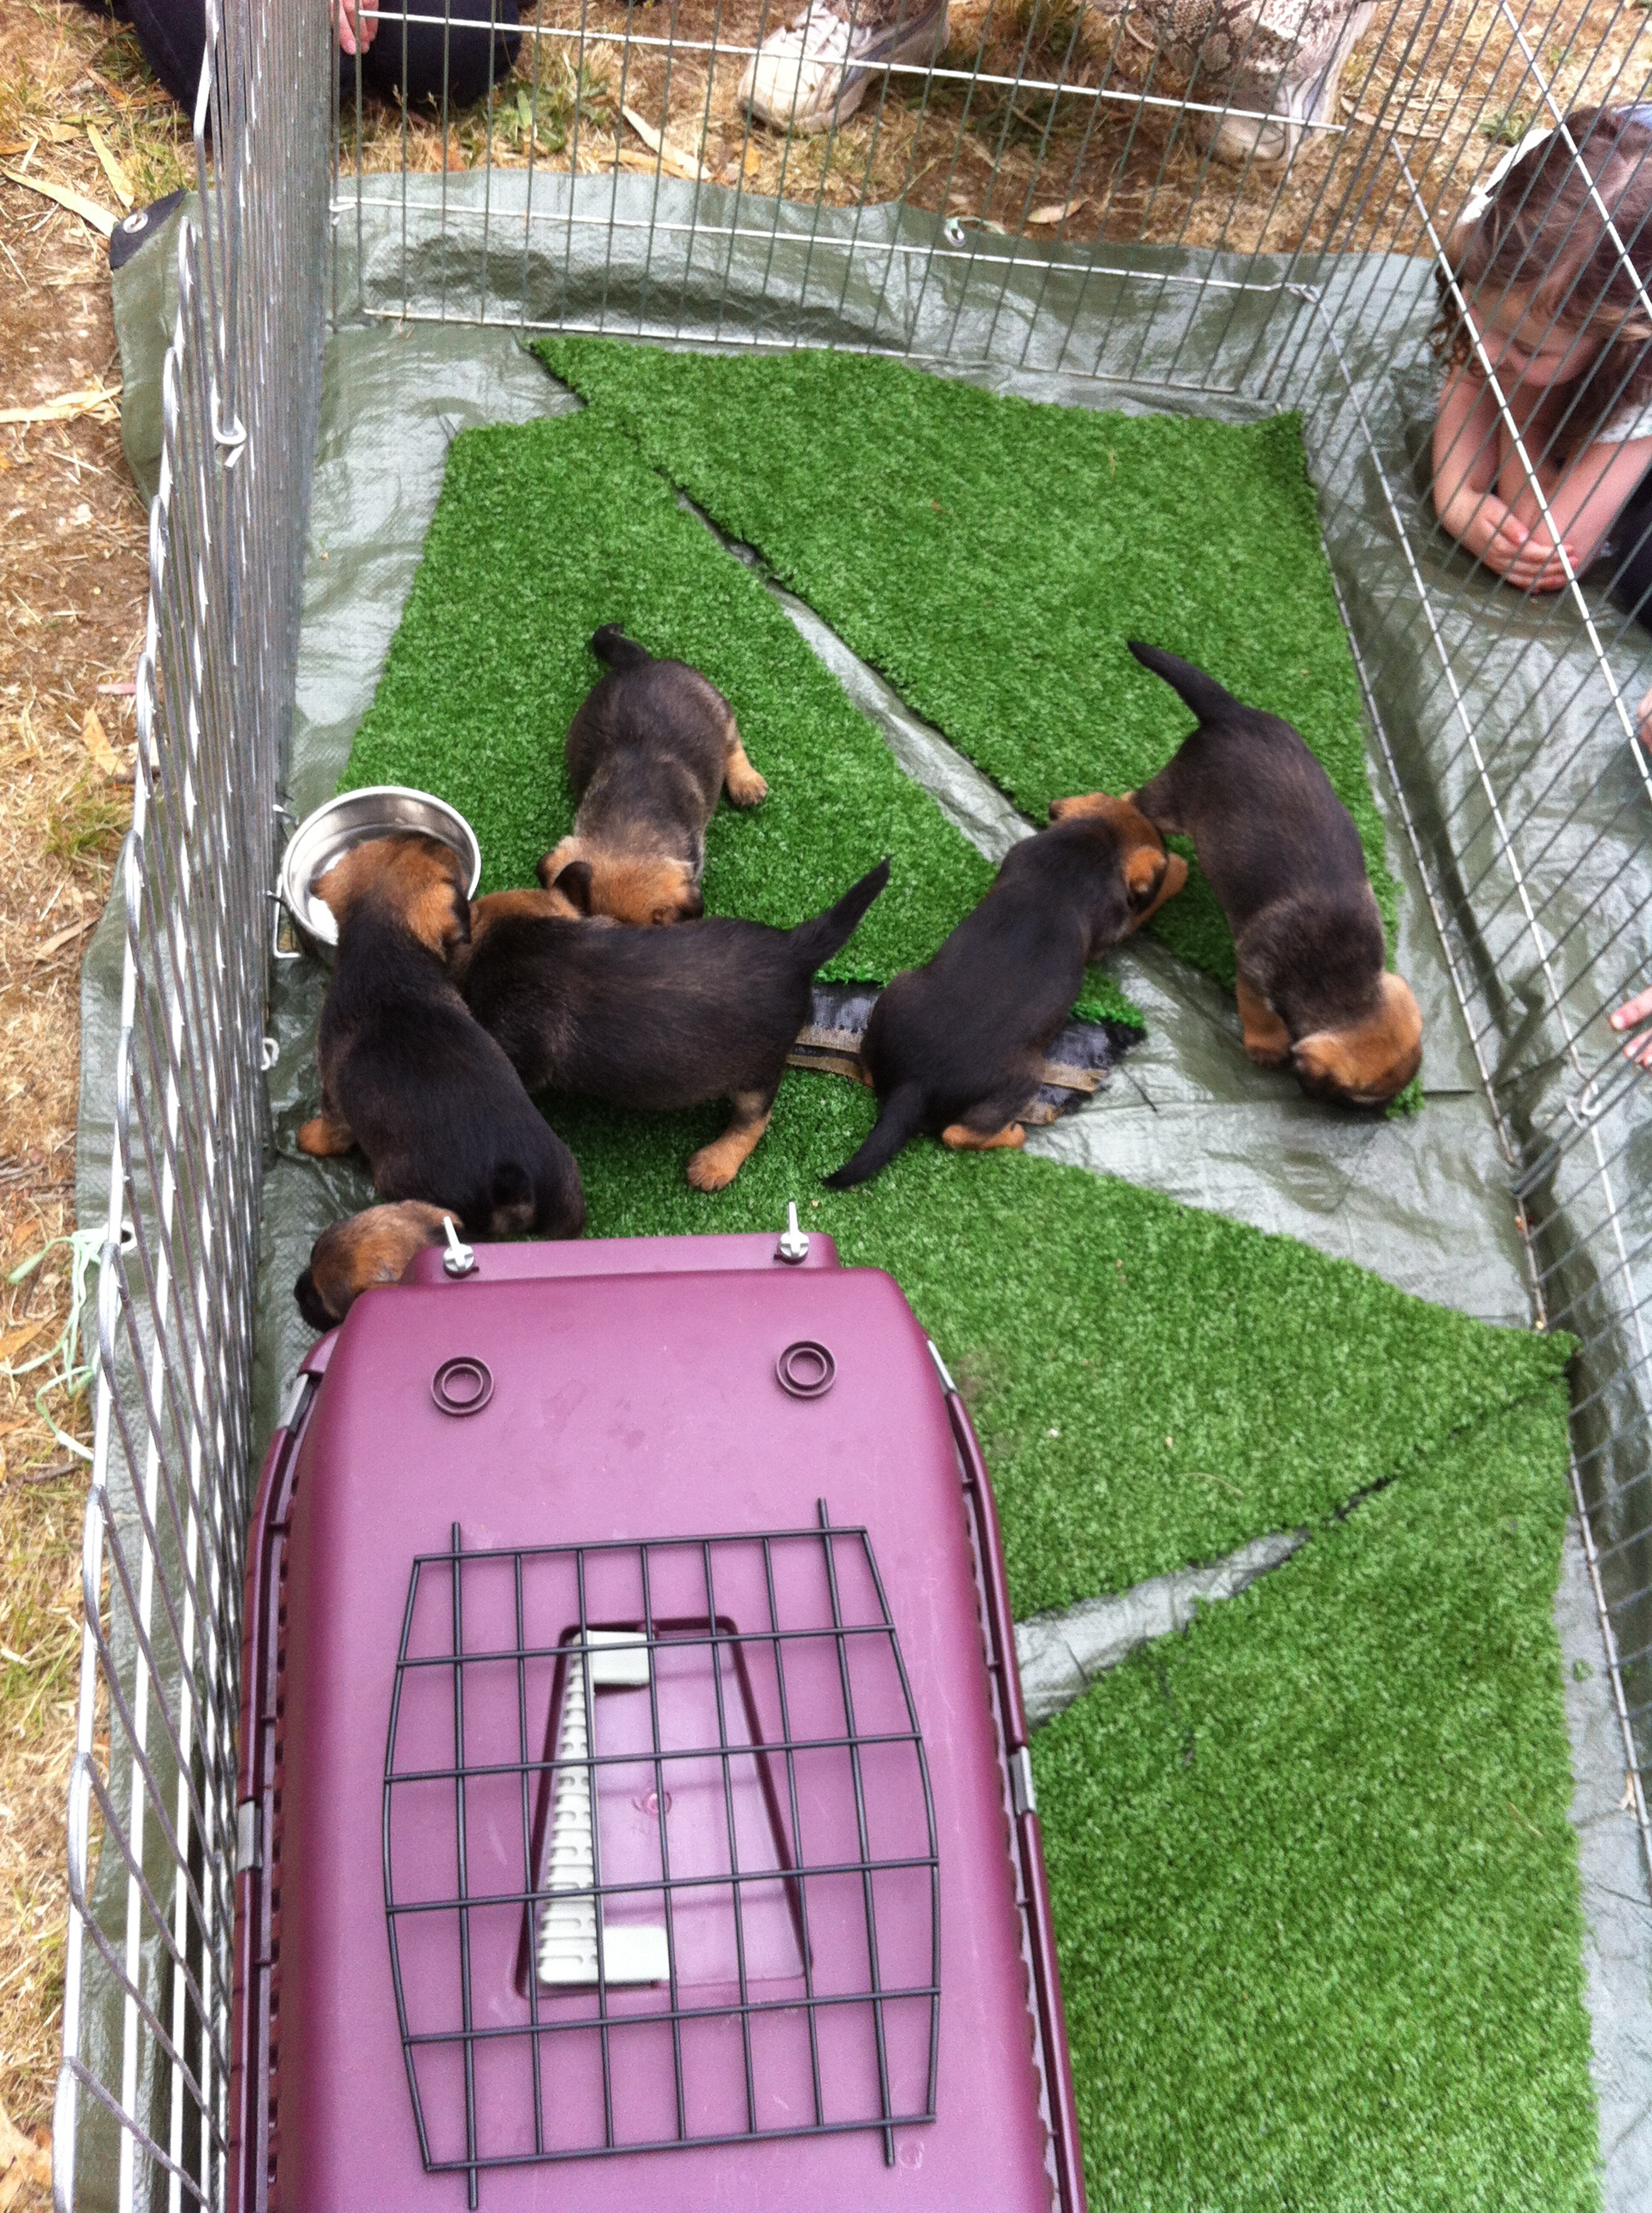 Puppies in a pen with a child peering in.